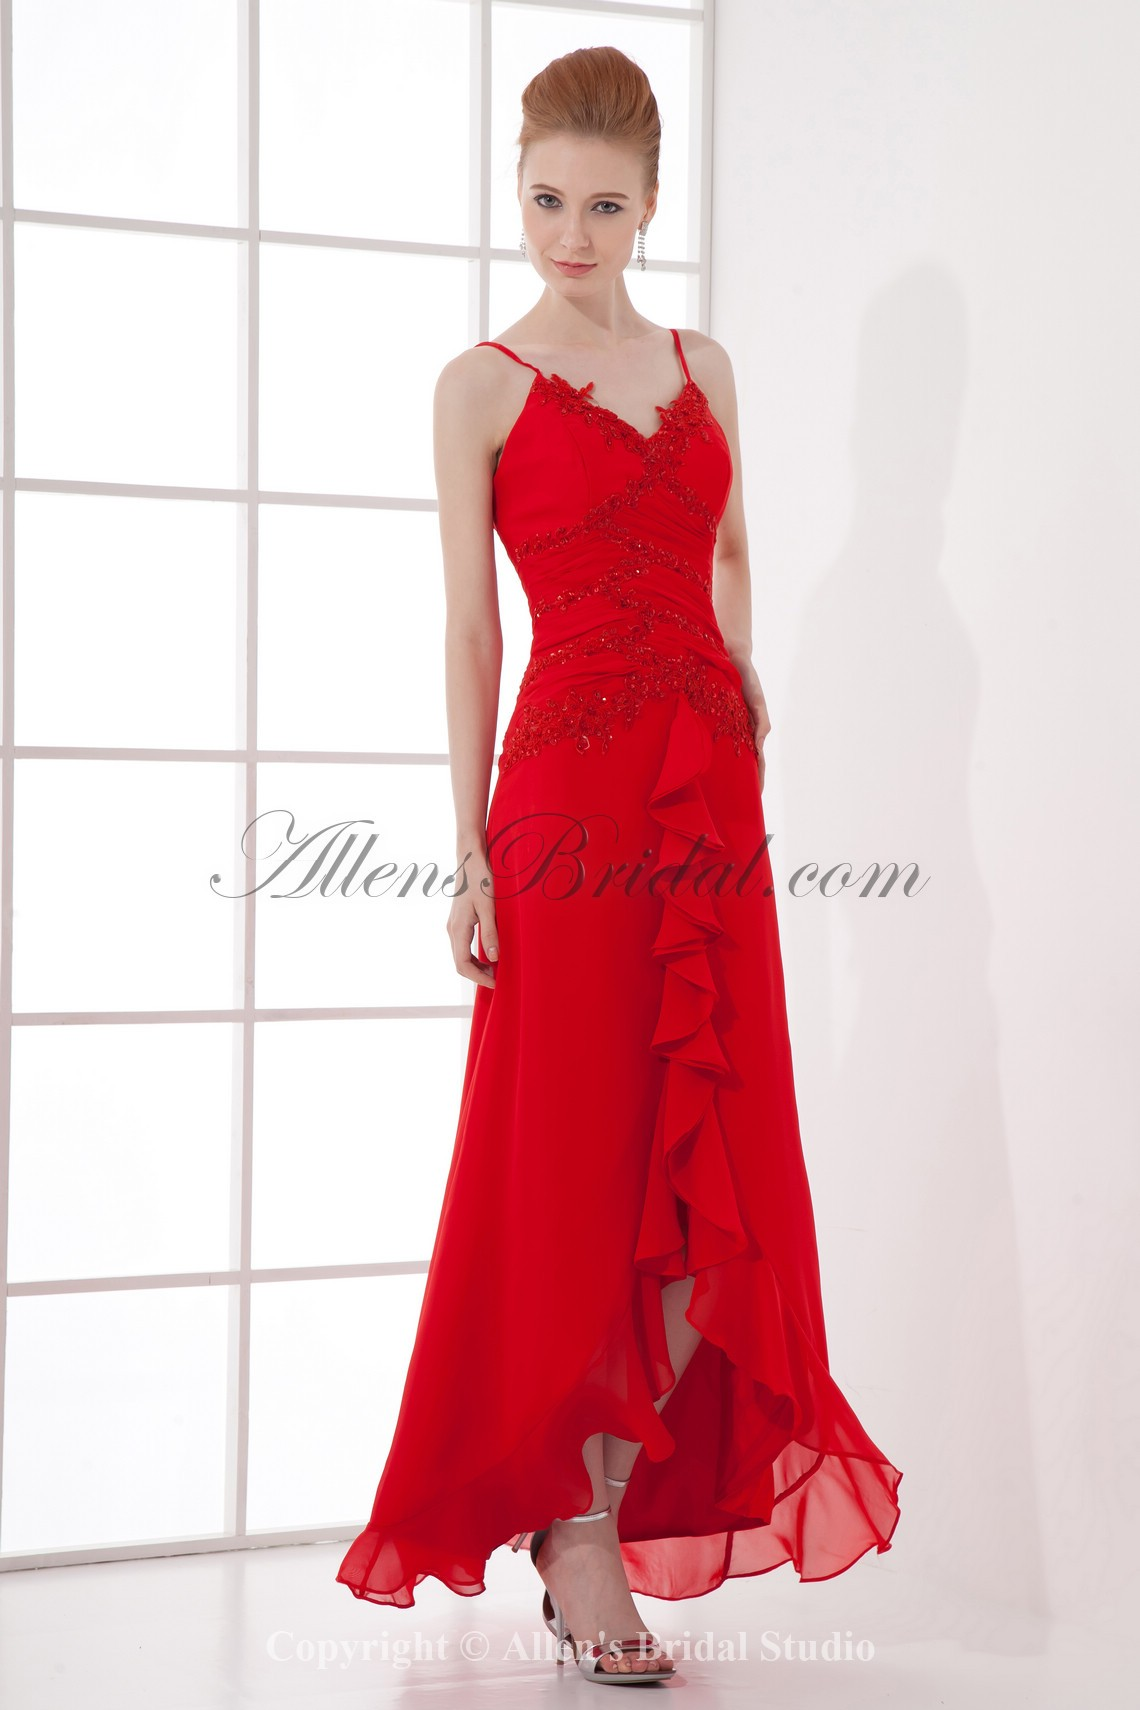 /101-804/chiffon-spaghetti-neckline-a-line-asymmetrical-embroidered-prom-dress.jpg